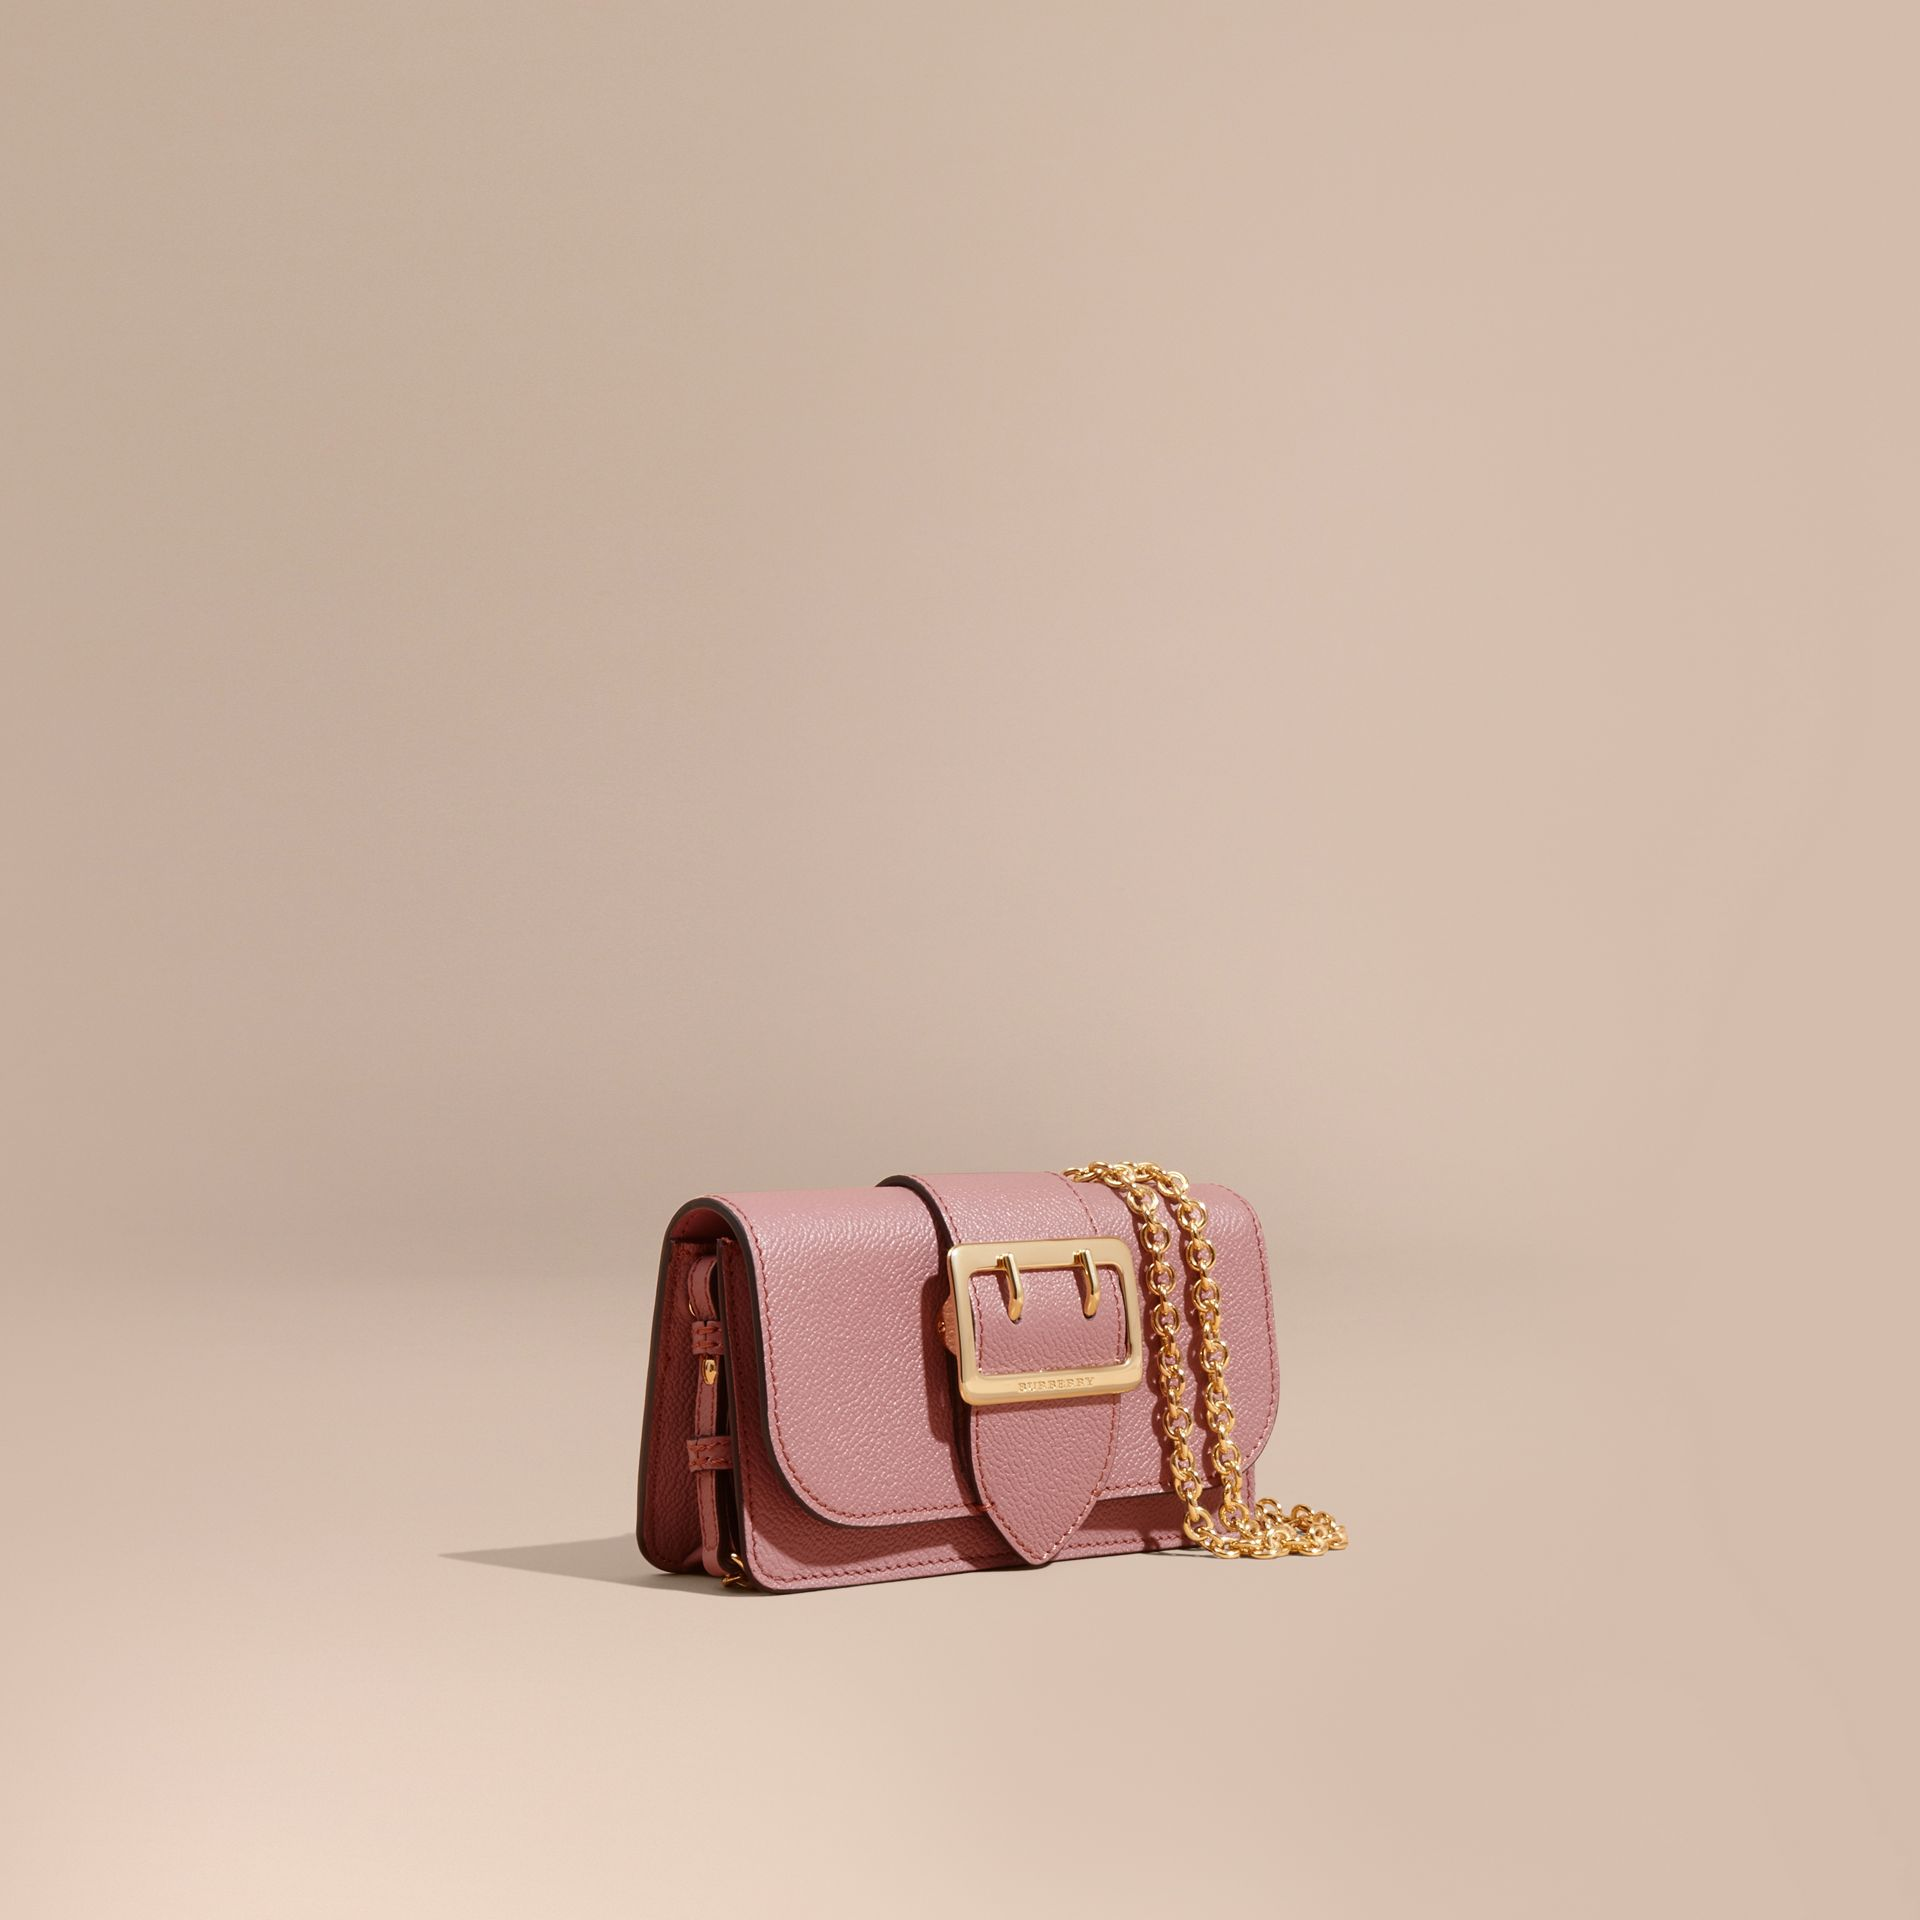 The Mini Buckle Bag in Grainy Leather Dusty Pink - gallery image 1